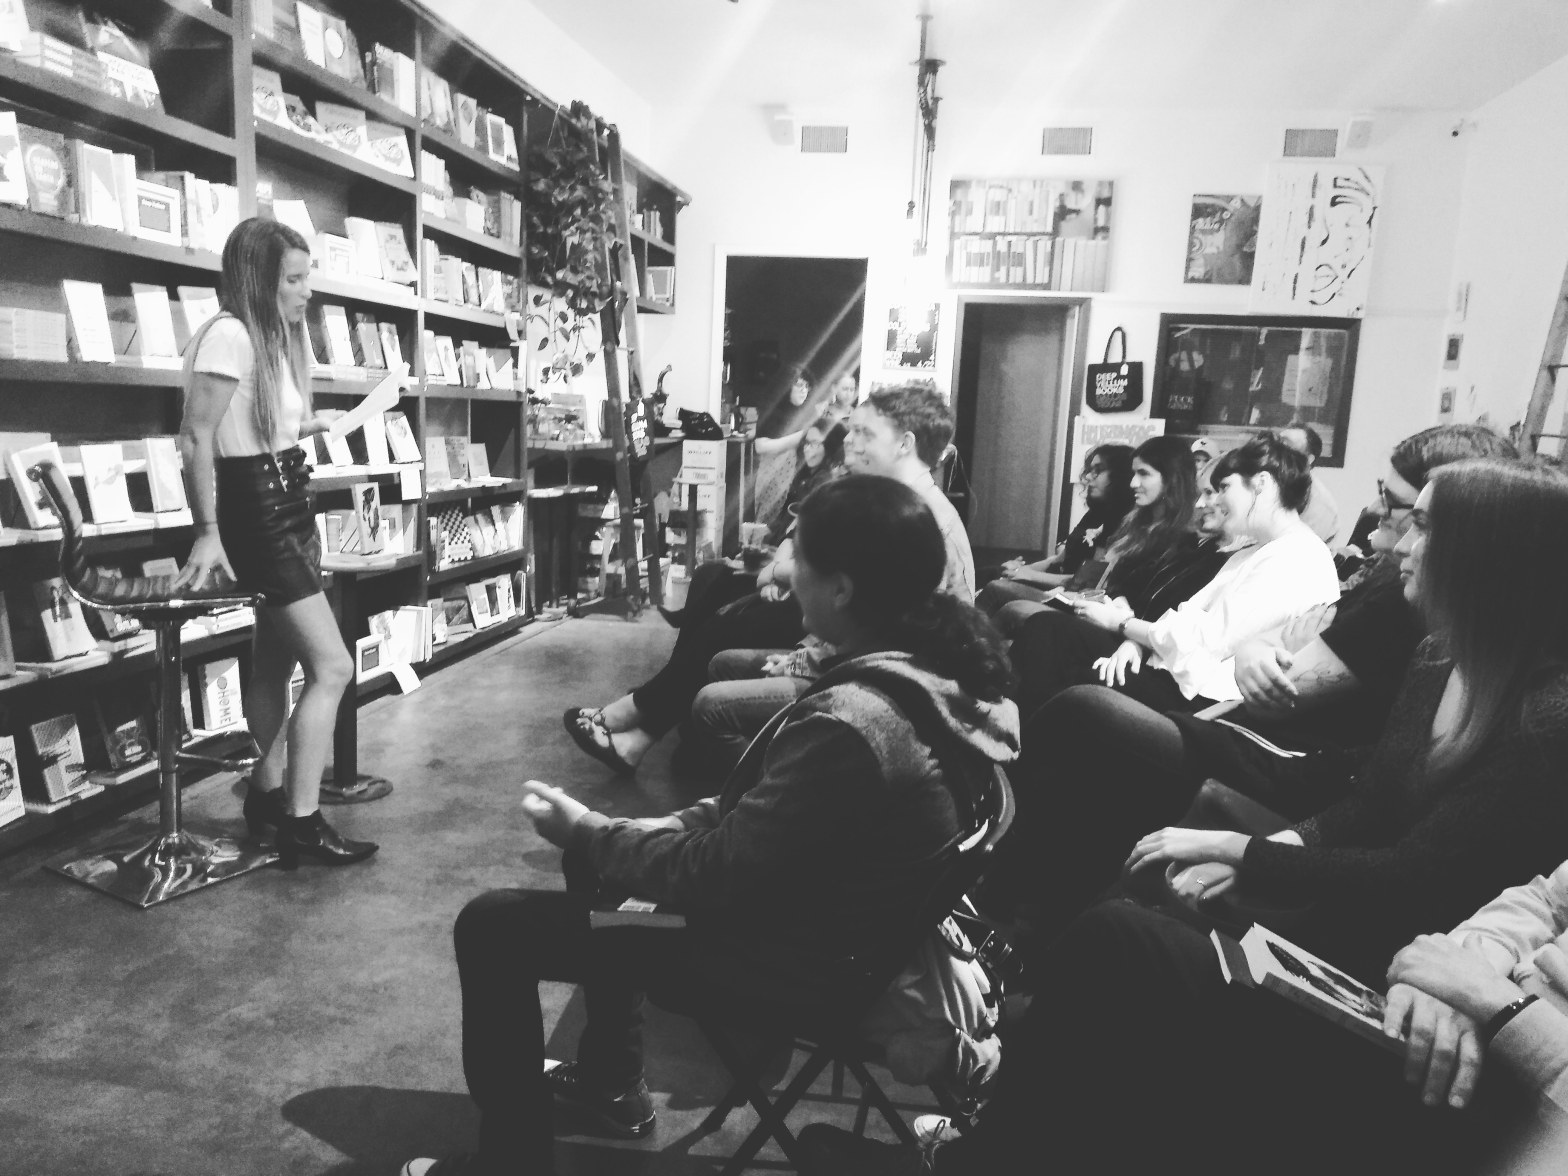 a woman stands in front of a wall of bookshelves on the left, reading from a book to two rows of listeners on the right